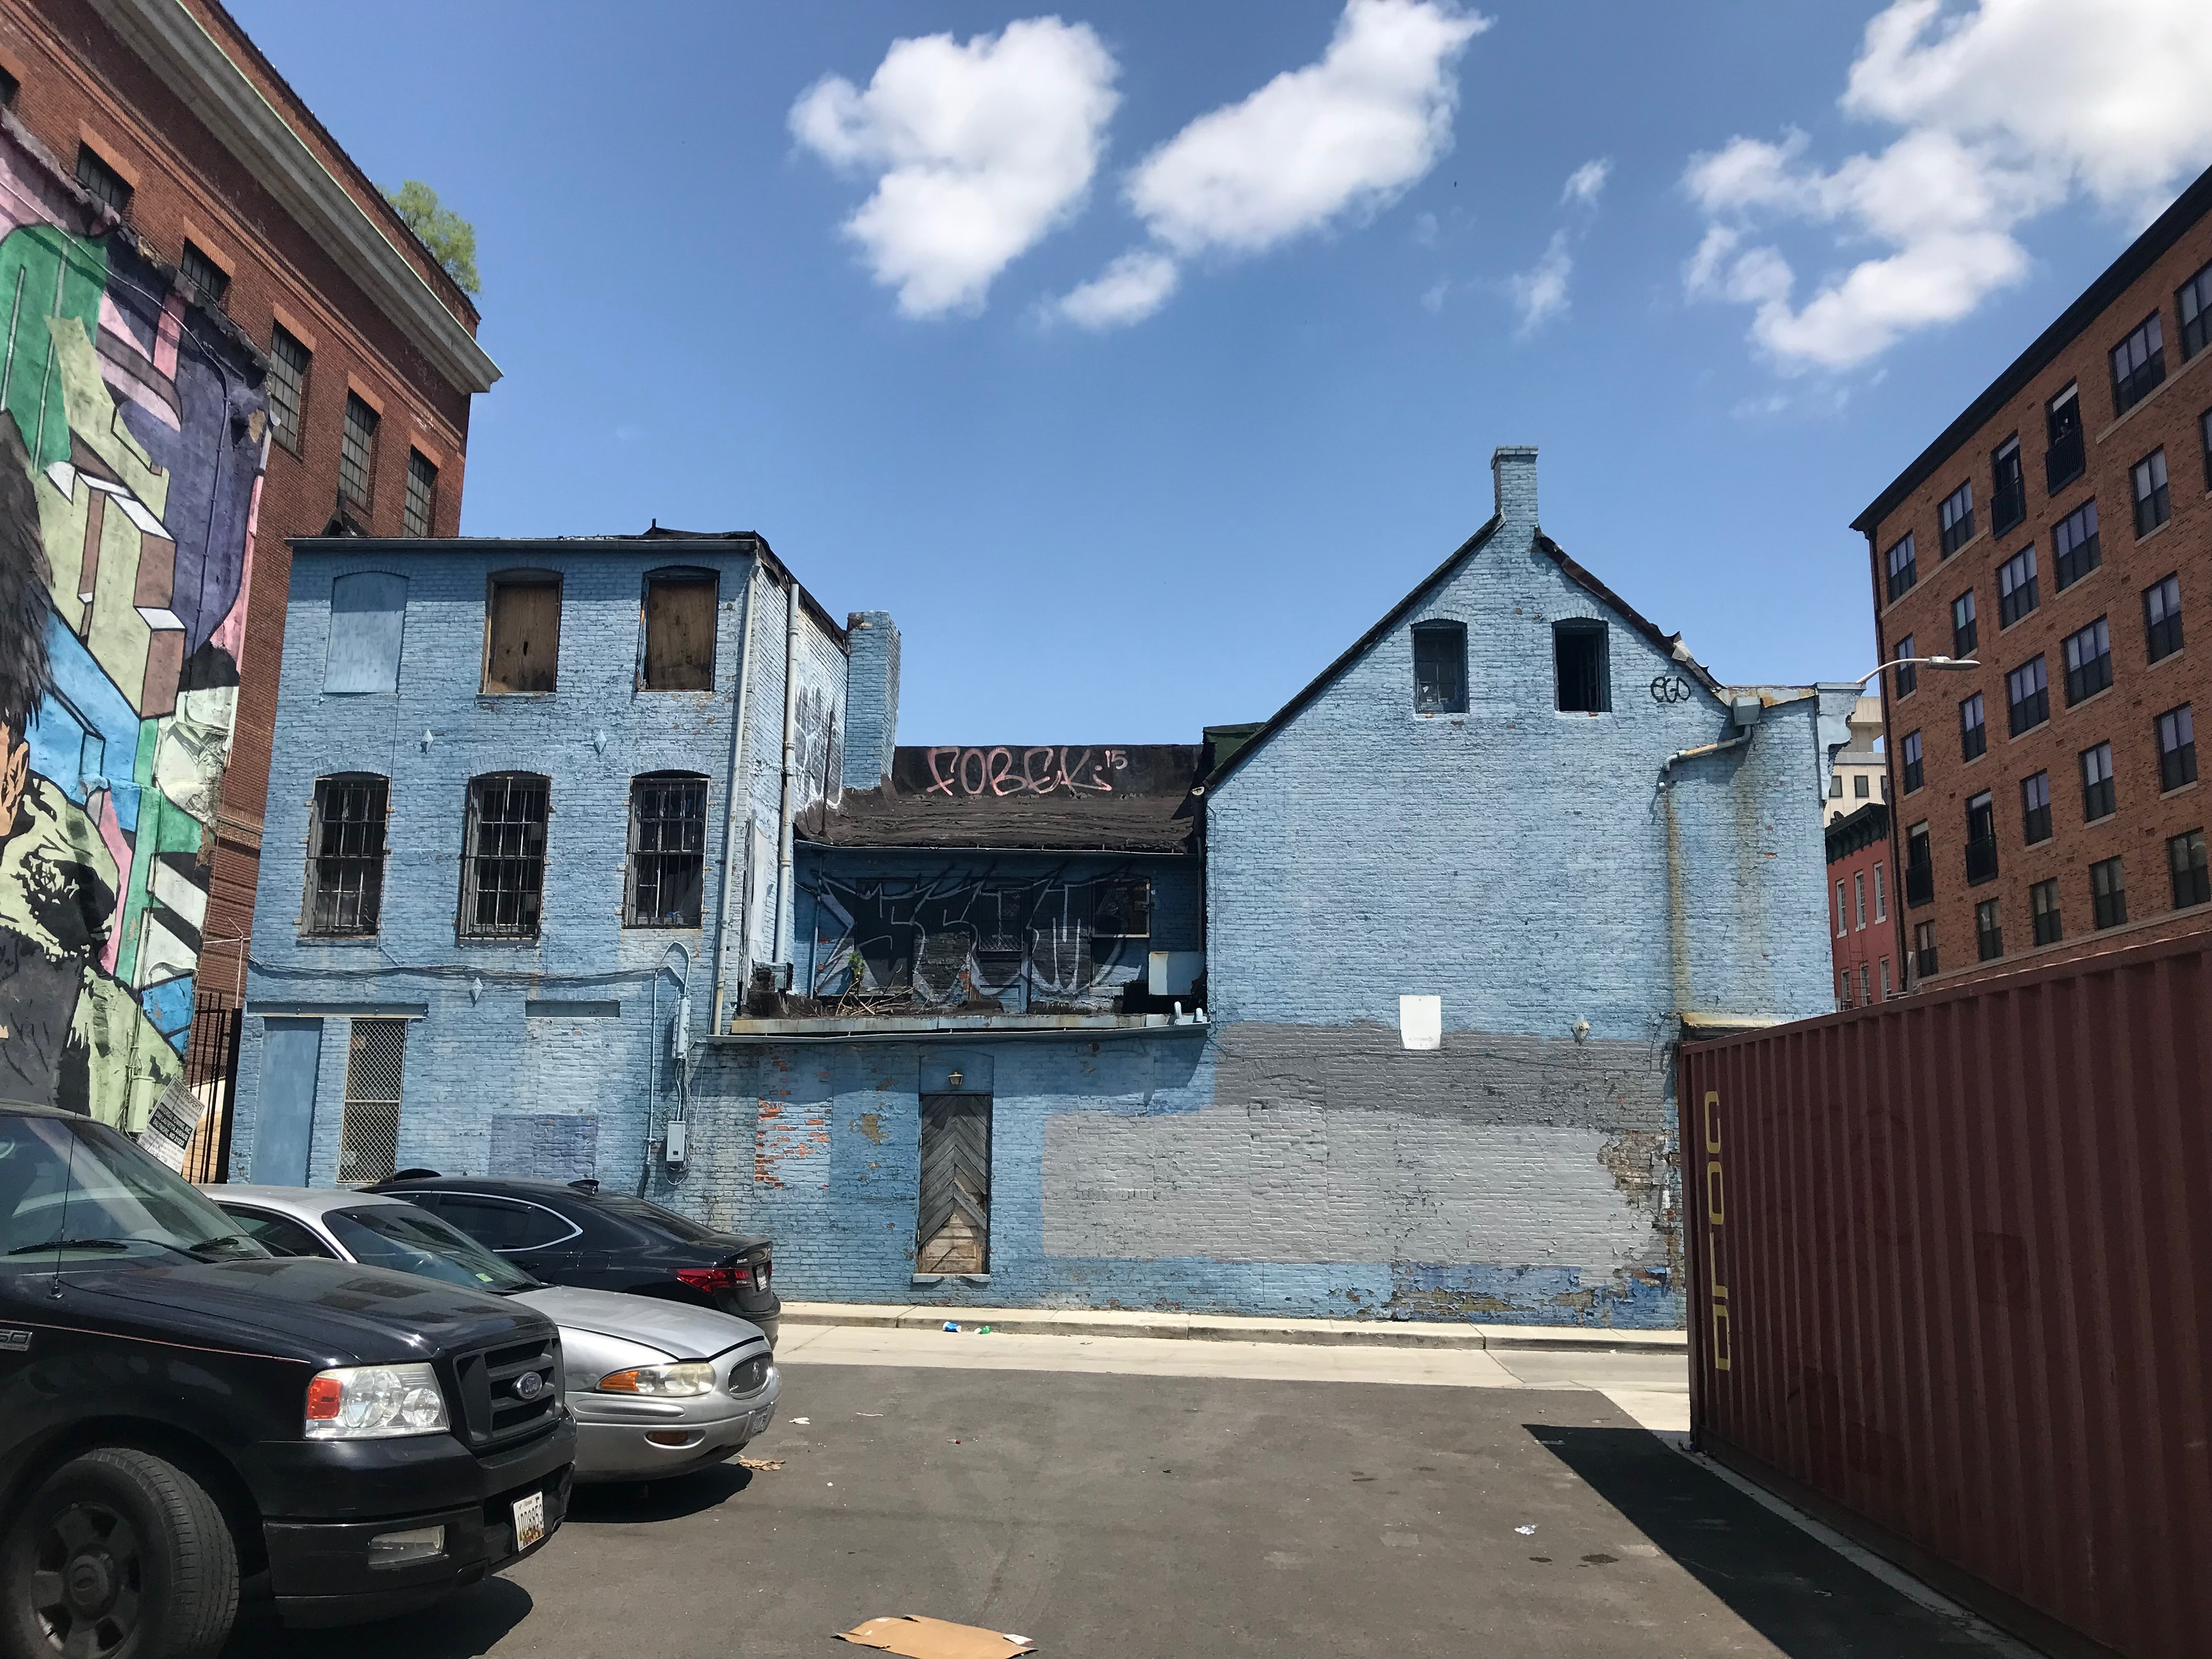 Side from tyson street, martick's restaurant francais, 214 w. mulberry street, baltimore, md 21201 photo